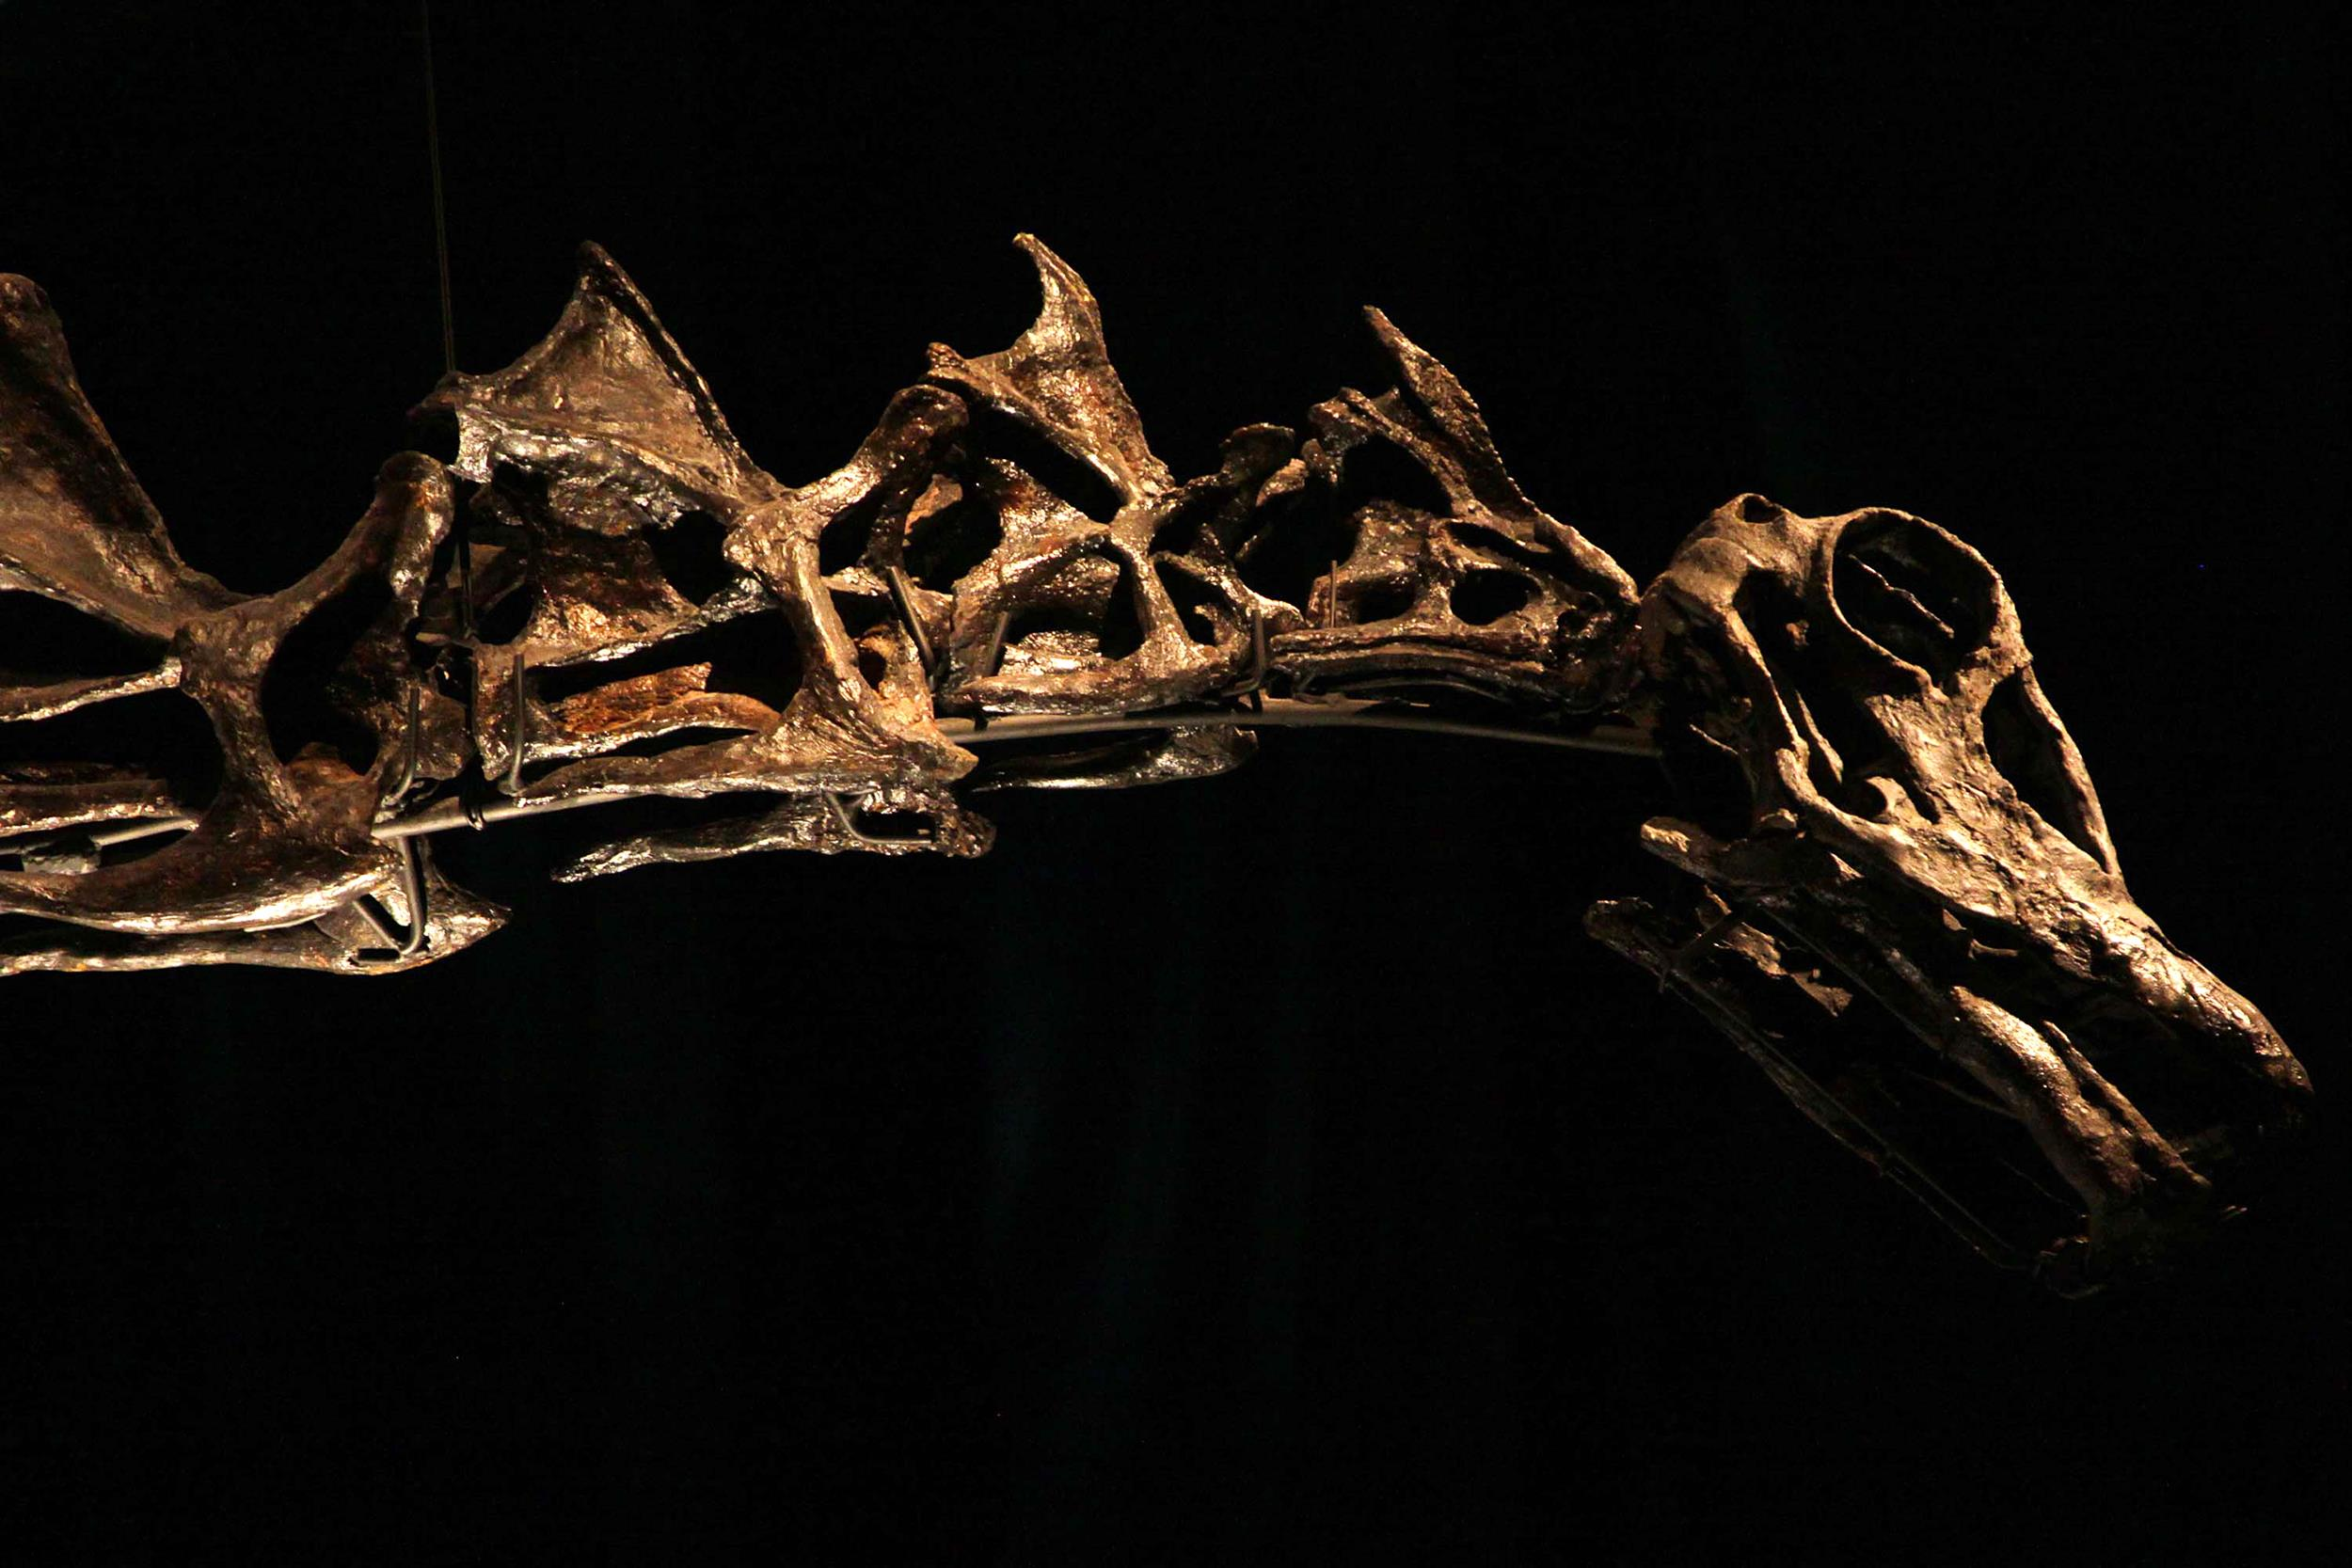 Image: View of the head of the Apatosaurio dinosaur fossil